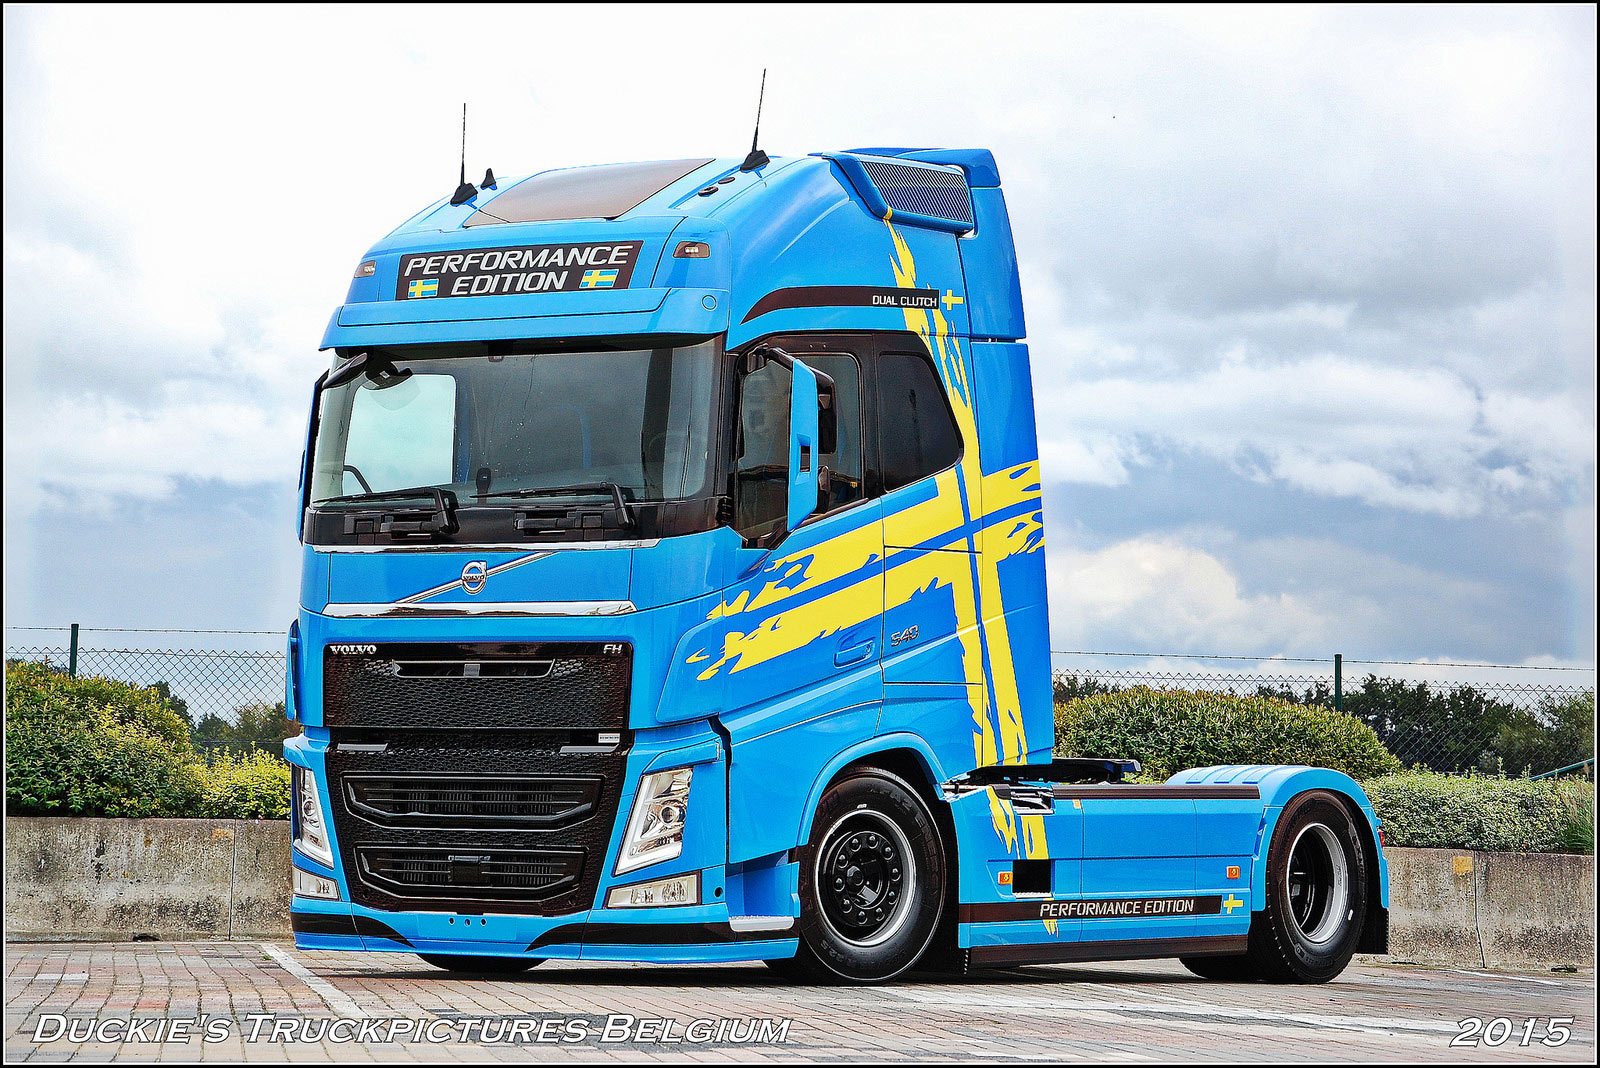 volvo fh performance edition limited editions trucksplanet. Black Bedroom Furniture Sets. Home Design Ideas